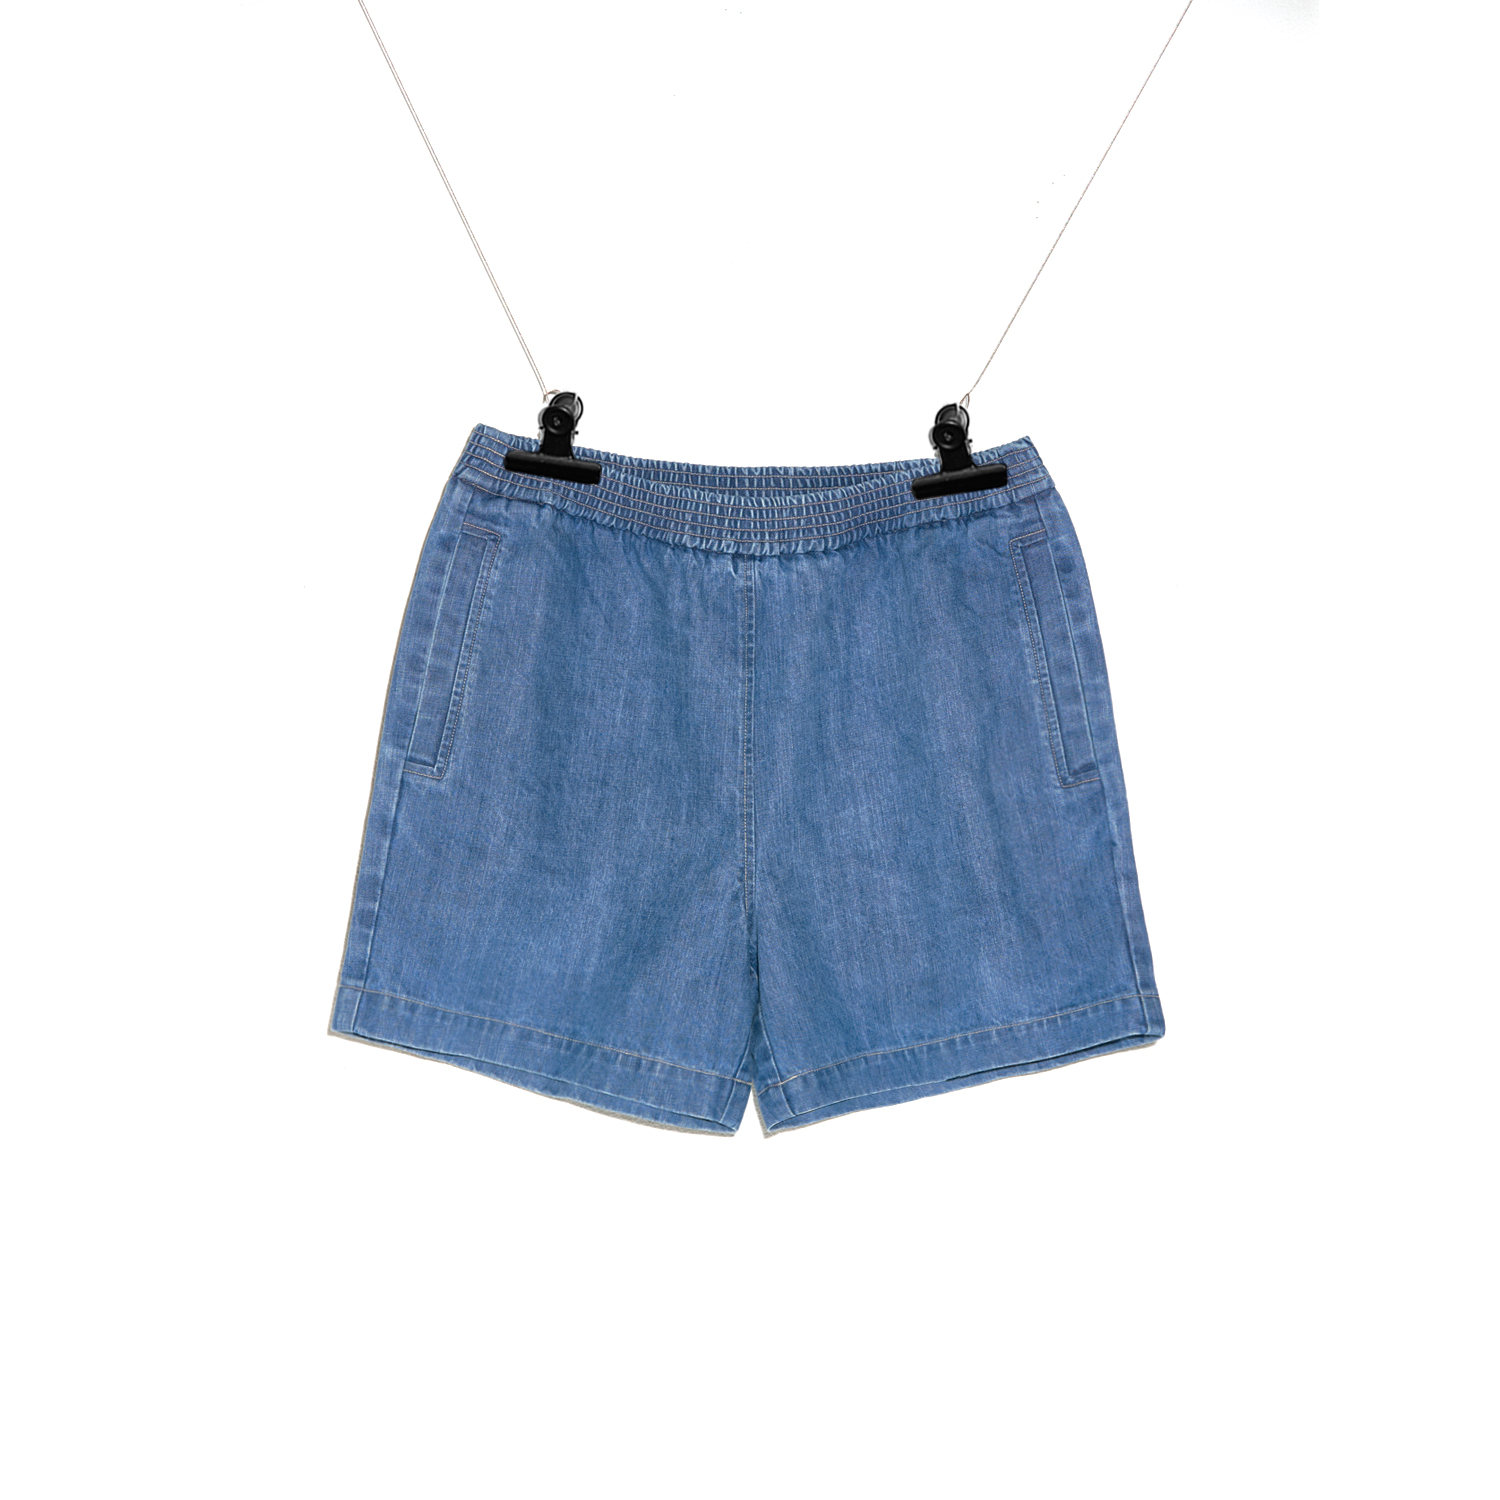 PMO DENIM SHORTS #1 BLUE